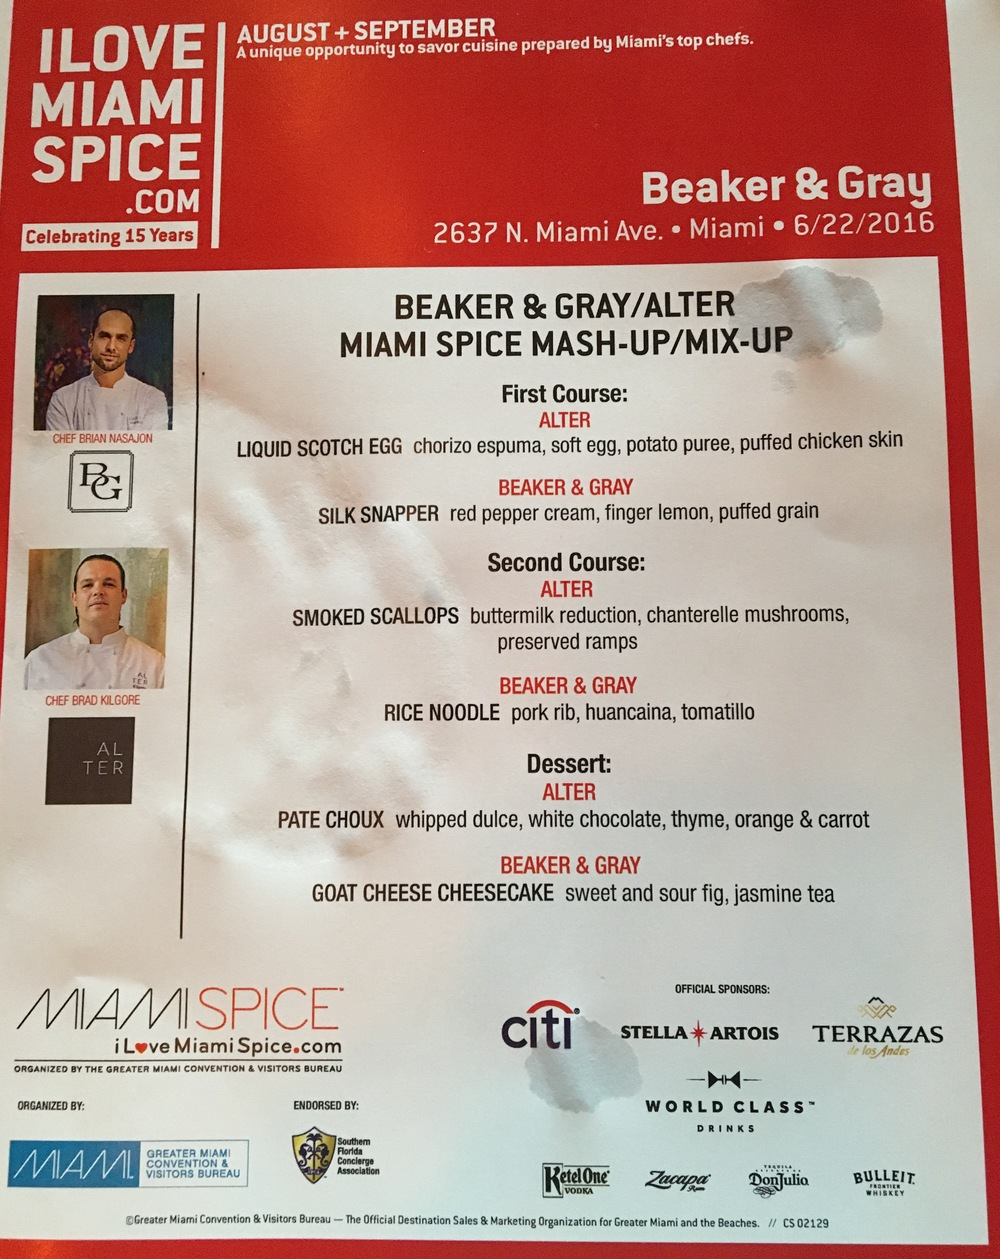 Miami Spice Mashup menu